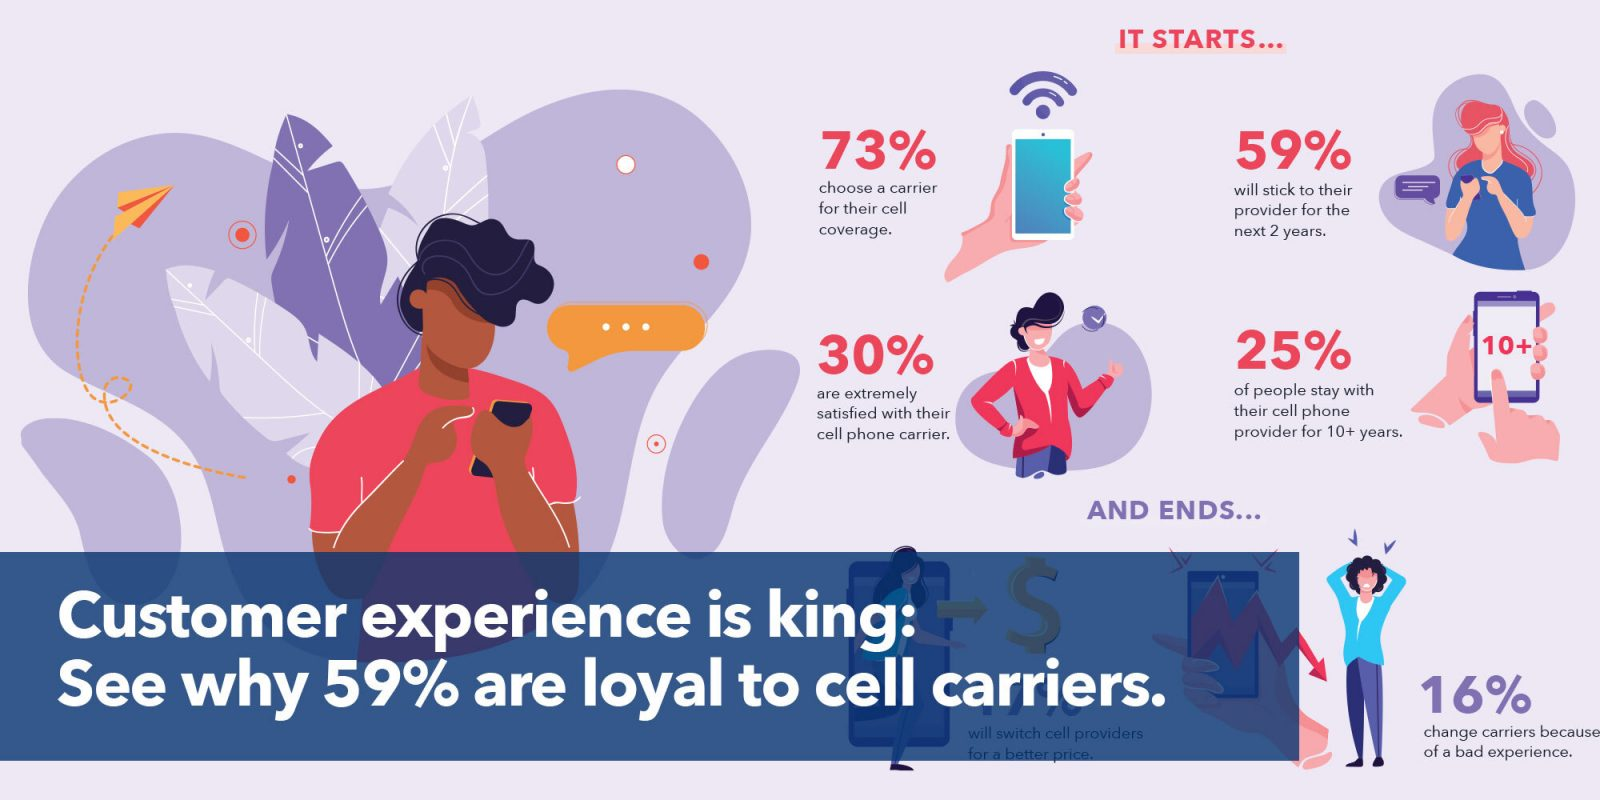 Customer experience is king: see why 59% are loyal to cell carriers.